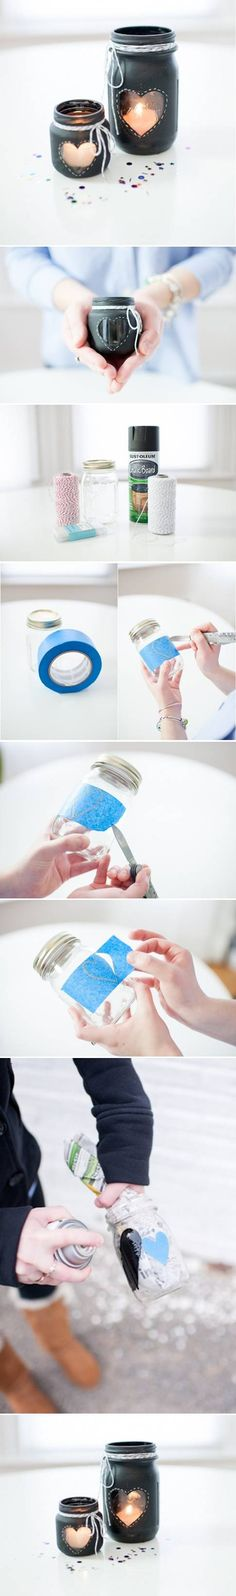 DIY Glass Jar Candlestick DIY Projects | UsefulDIY.com